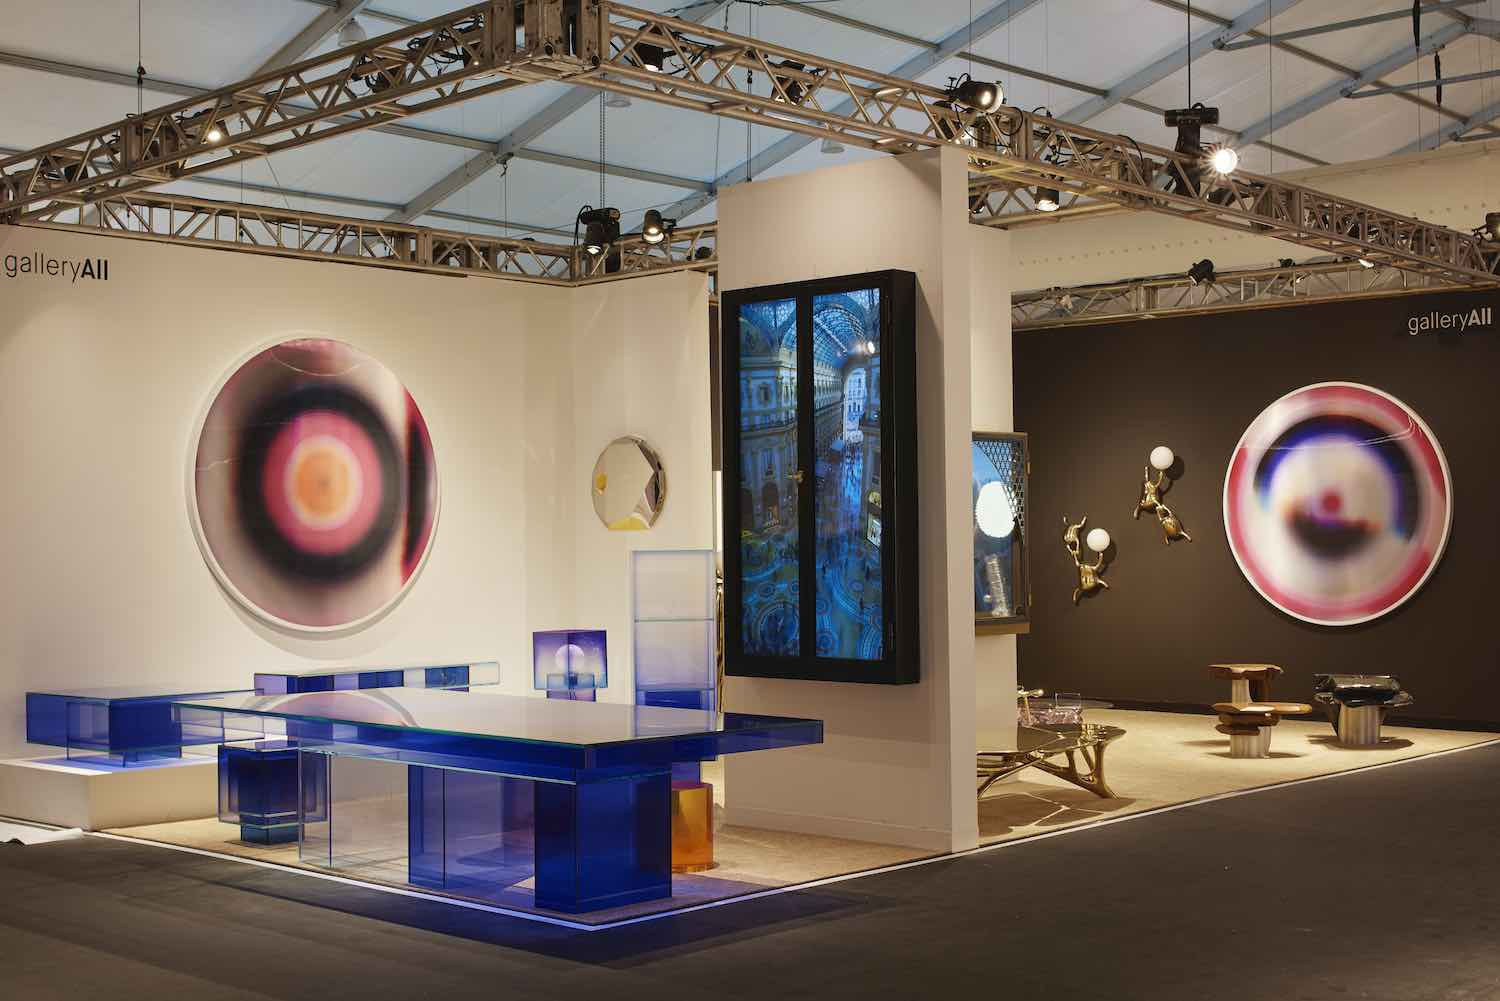 Gallery ALL @ DesignMiami - Photo by James Harris